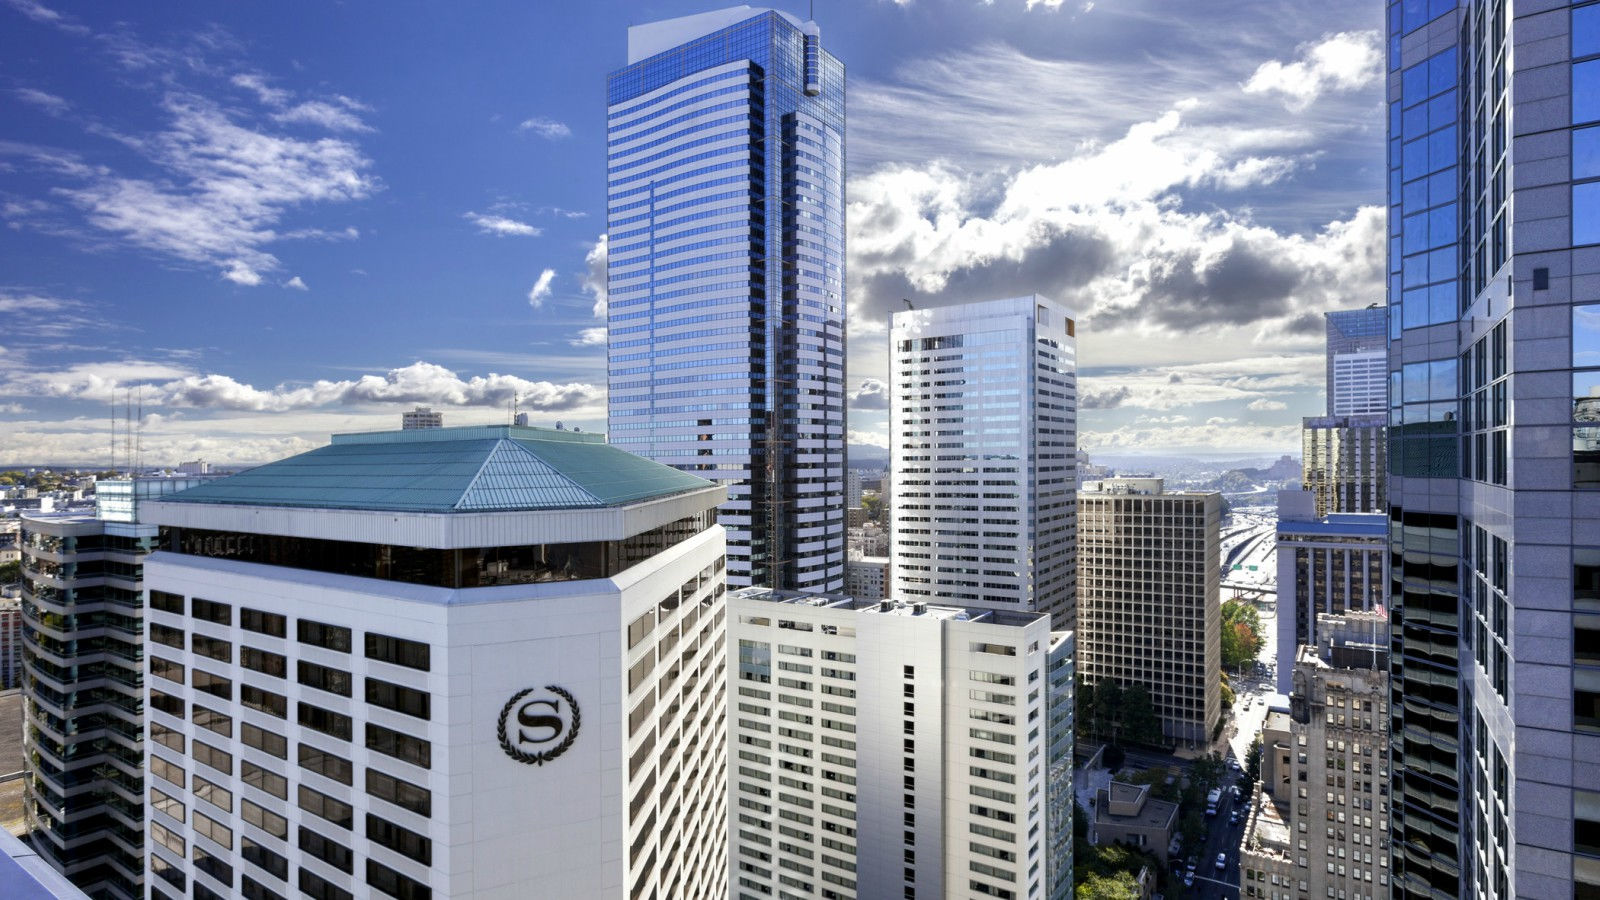 Contact Us - Sheraton Seattle Hotel